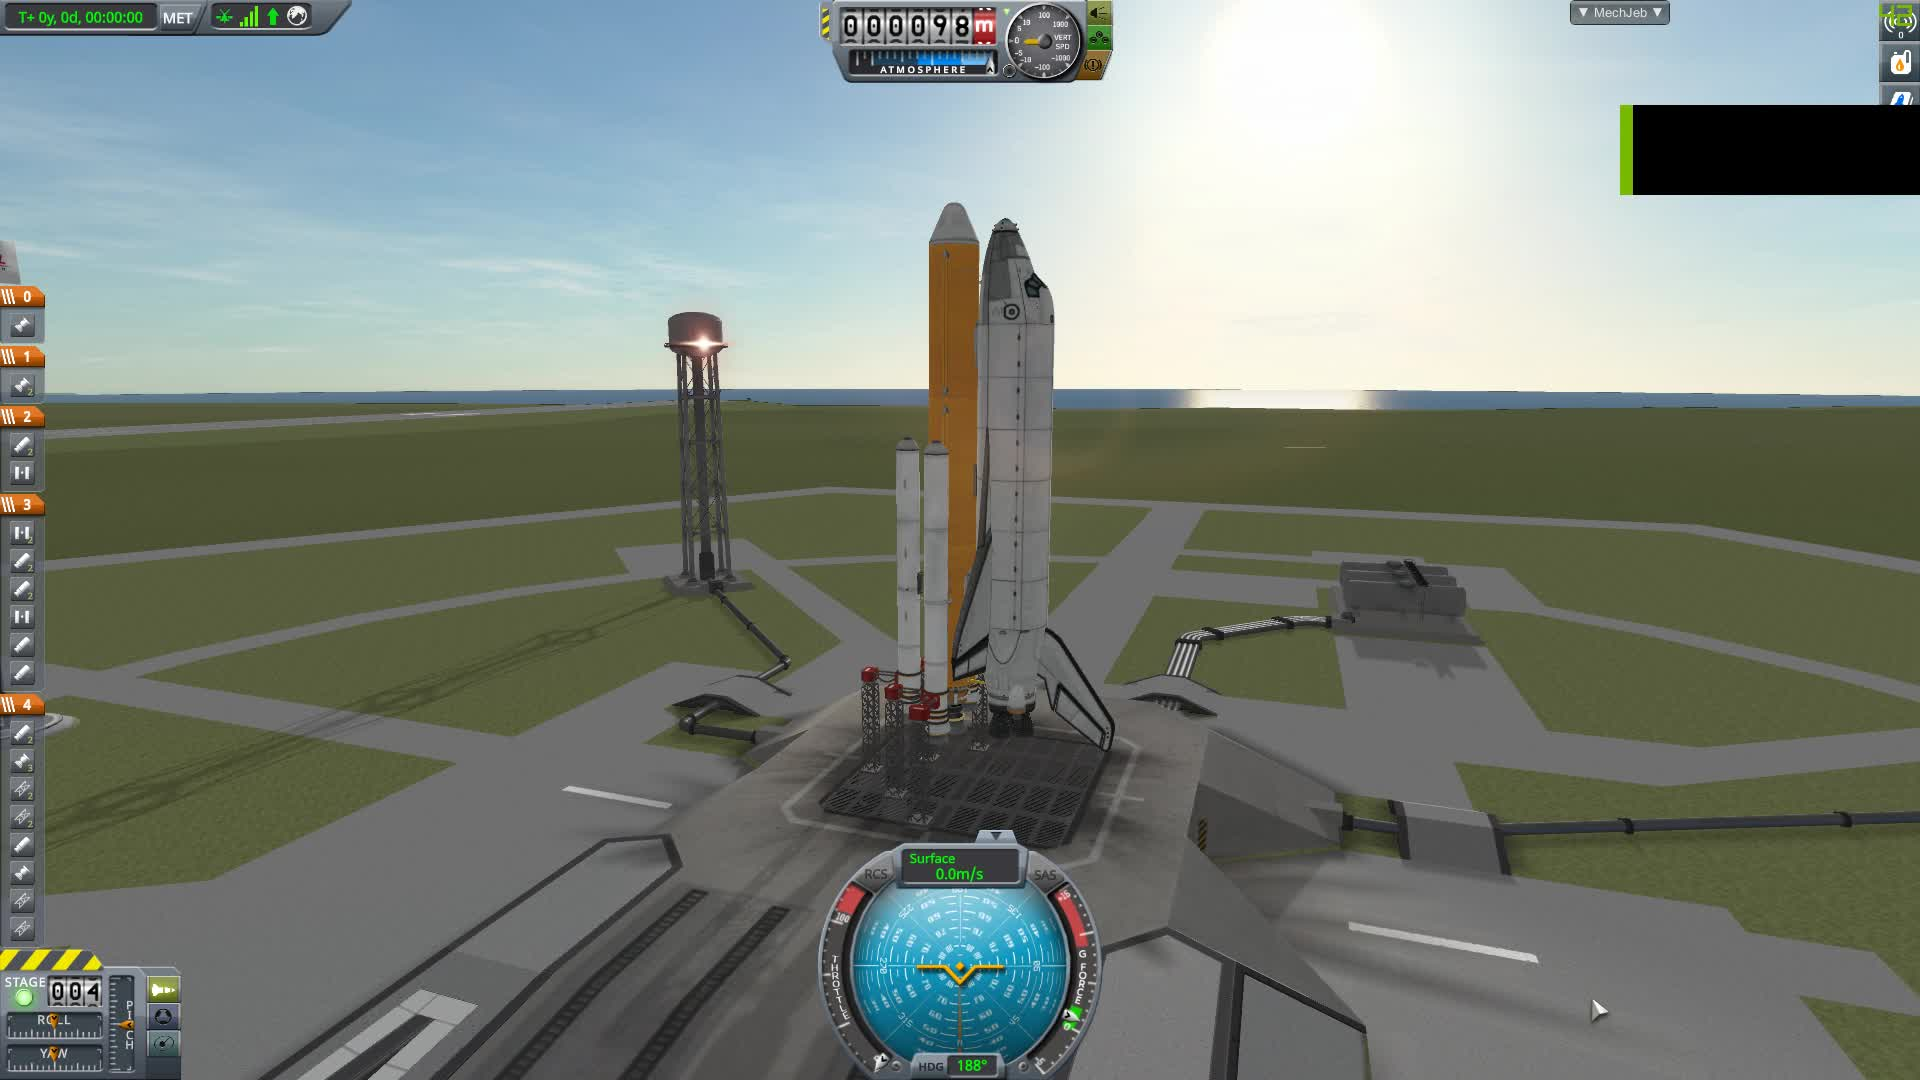 kerbalspaceprogram, Kerbal Space Program 2019.03.01 - 12.47.04.02 GIFs